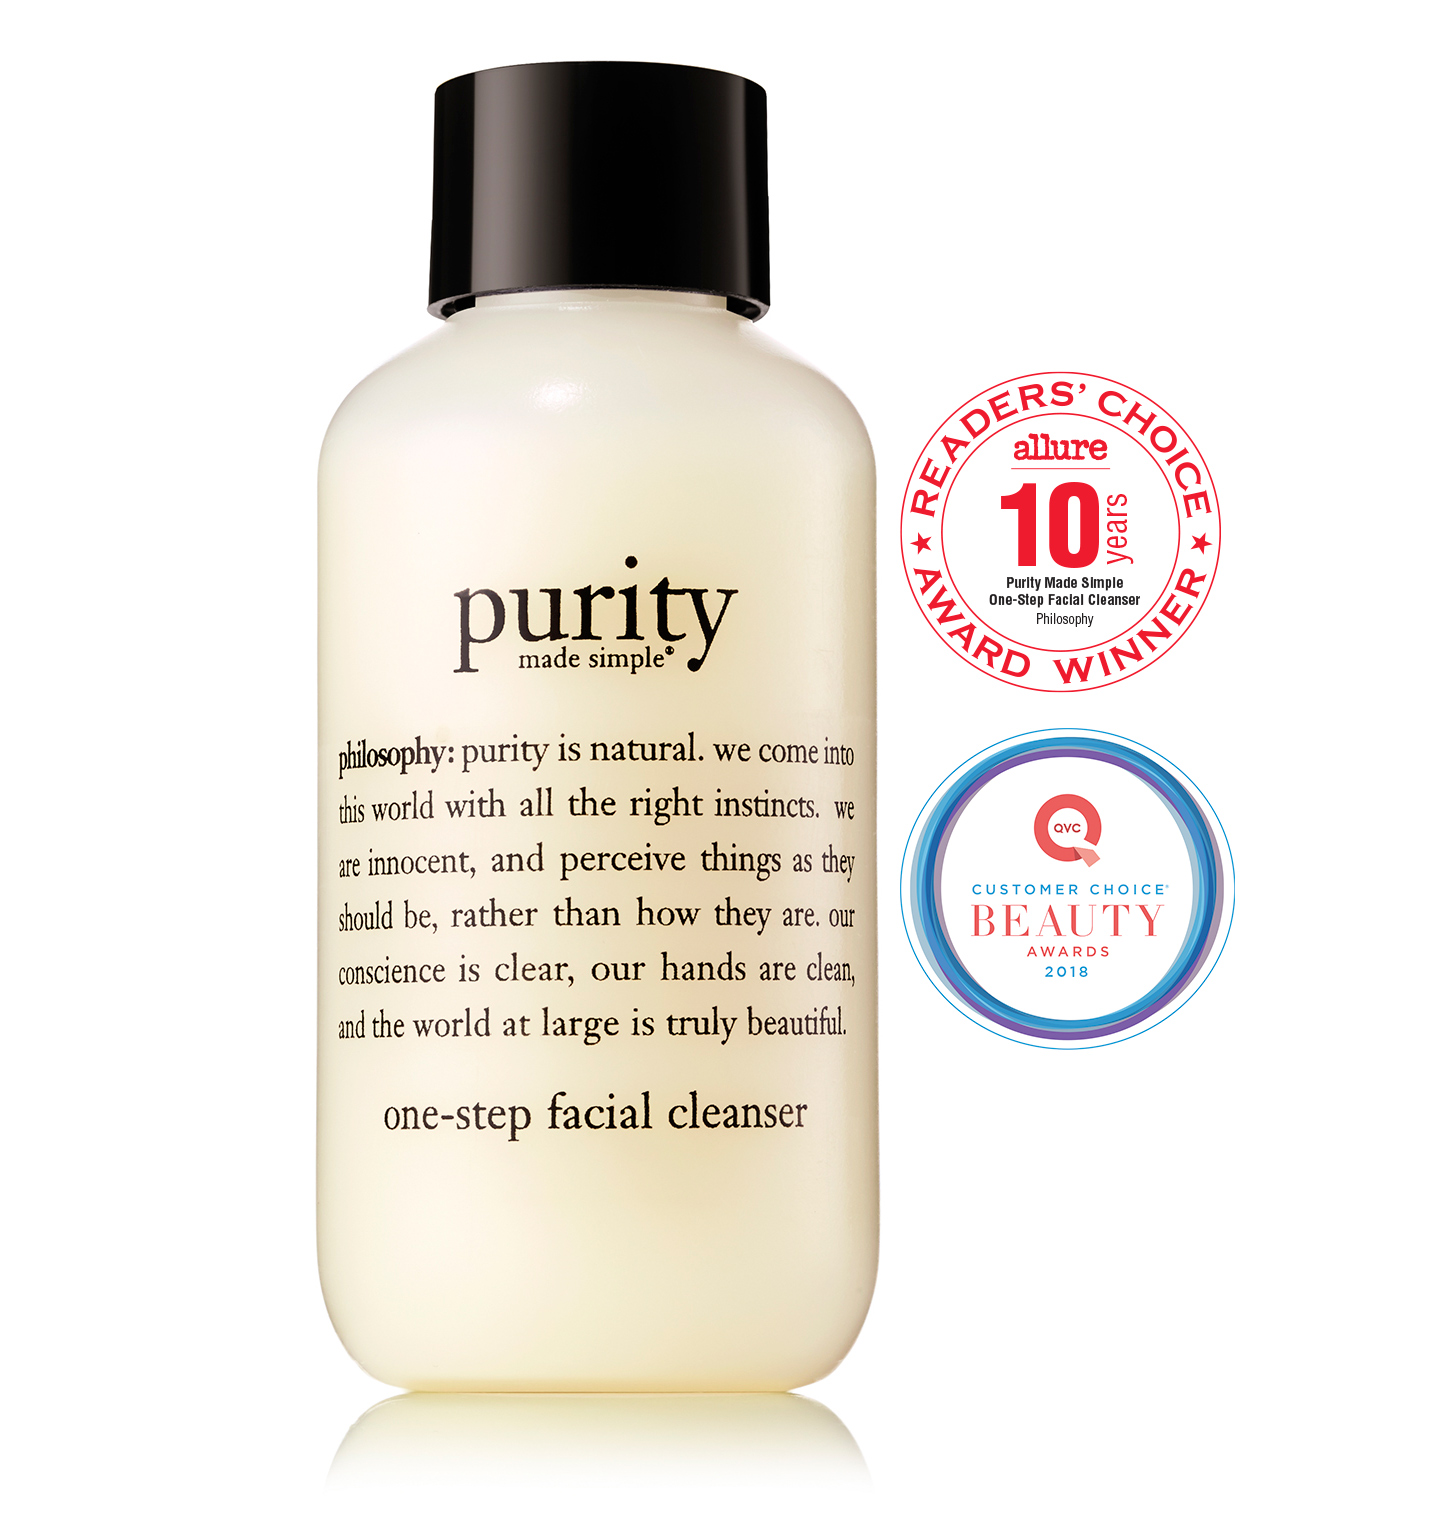 philosophy, purity made simple 3 oz. cleanser